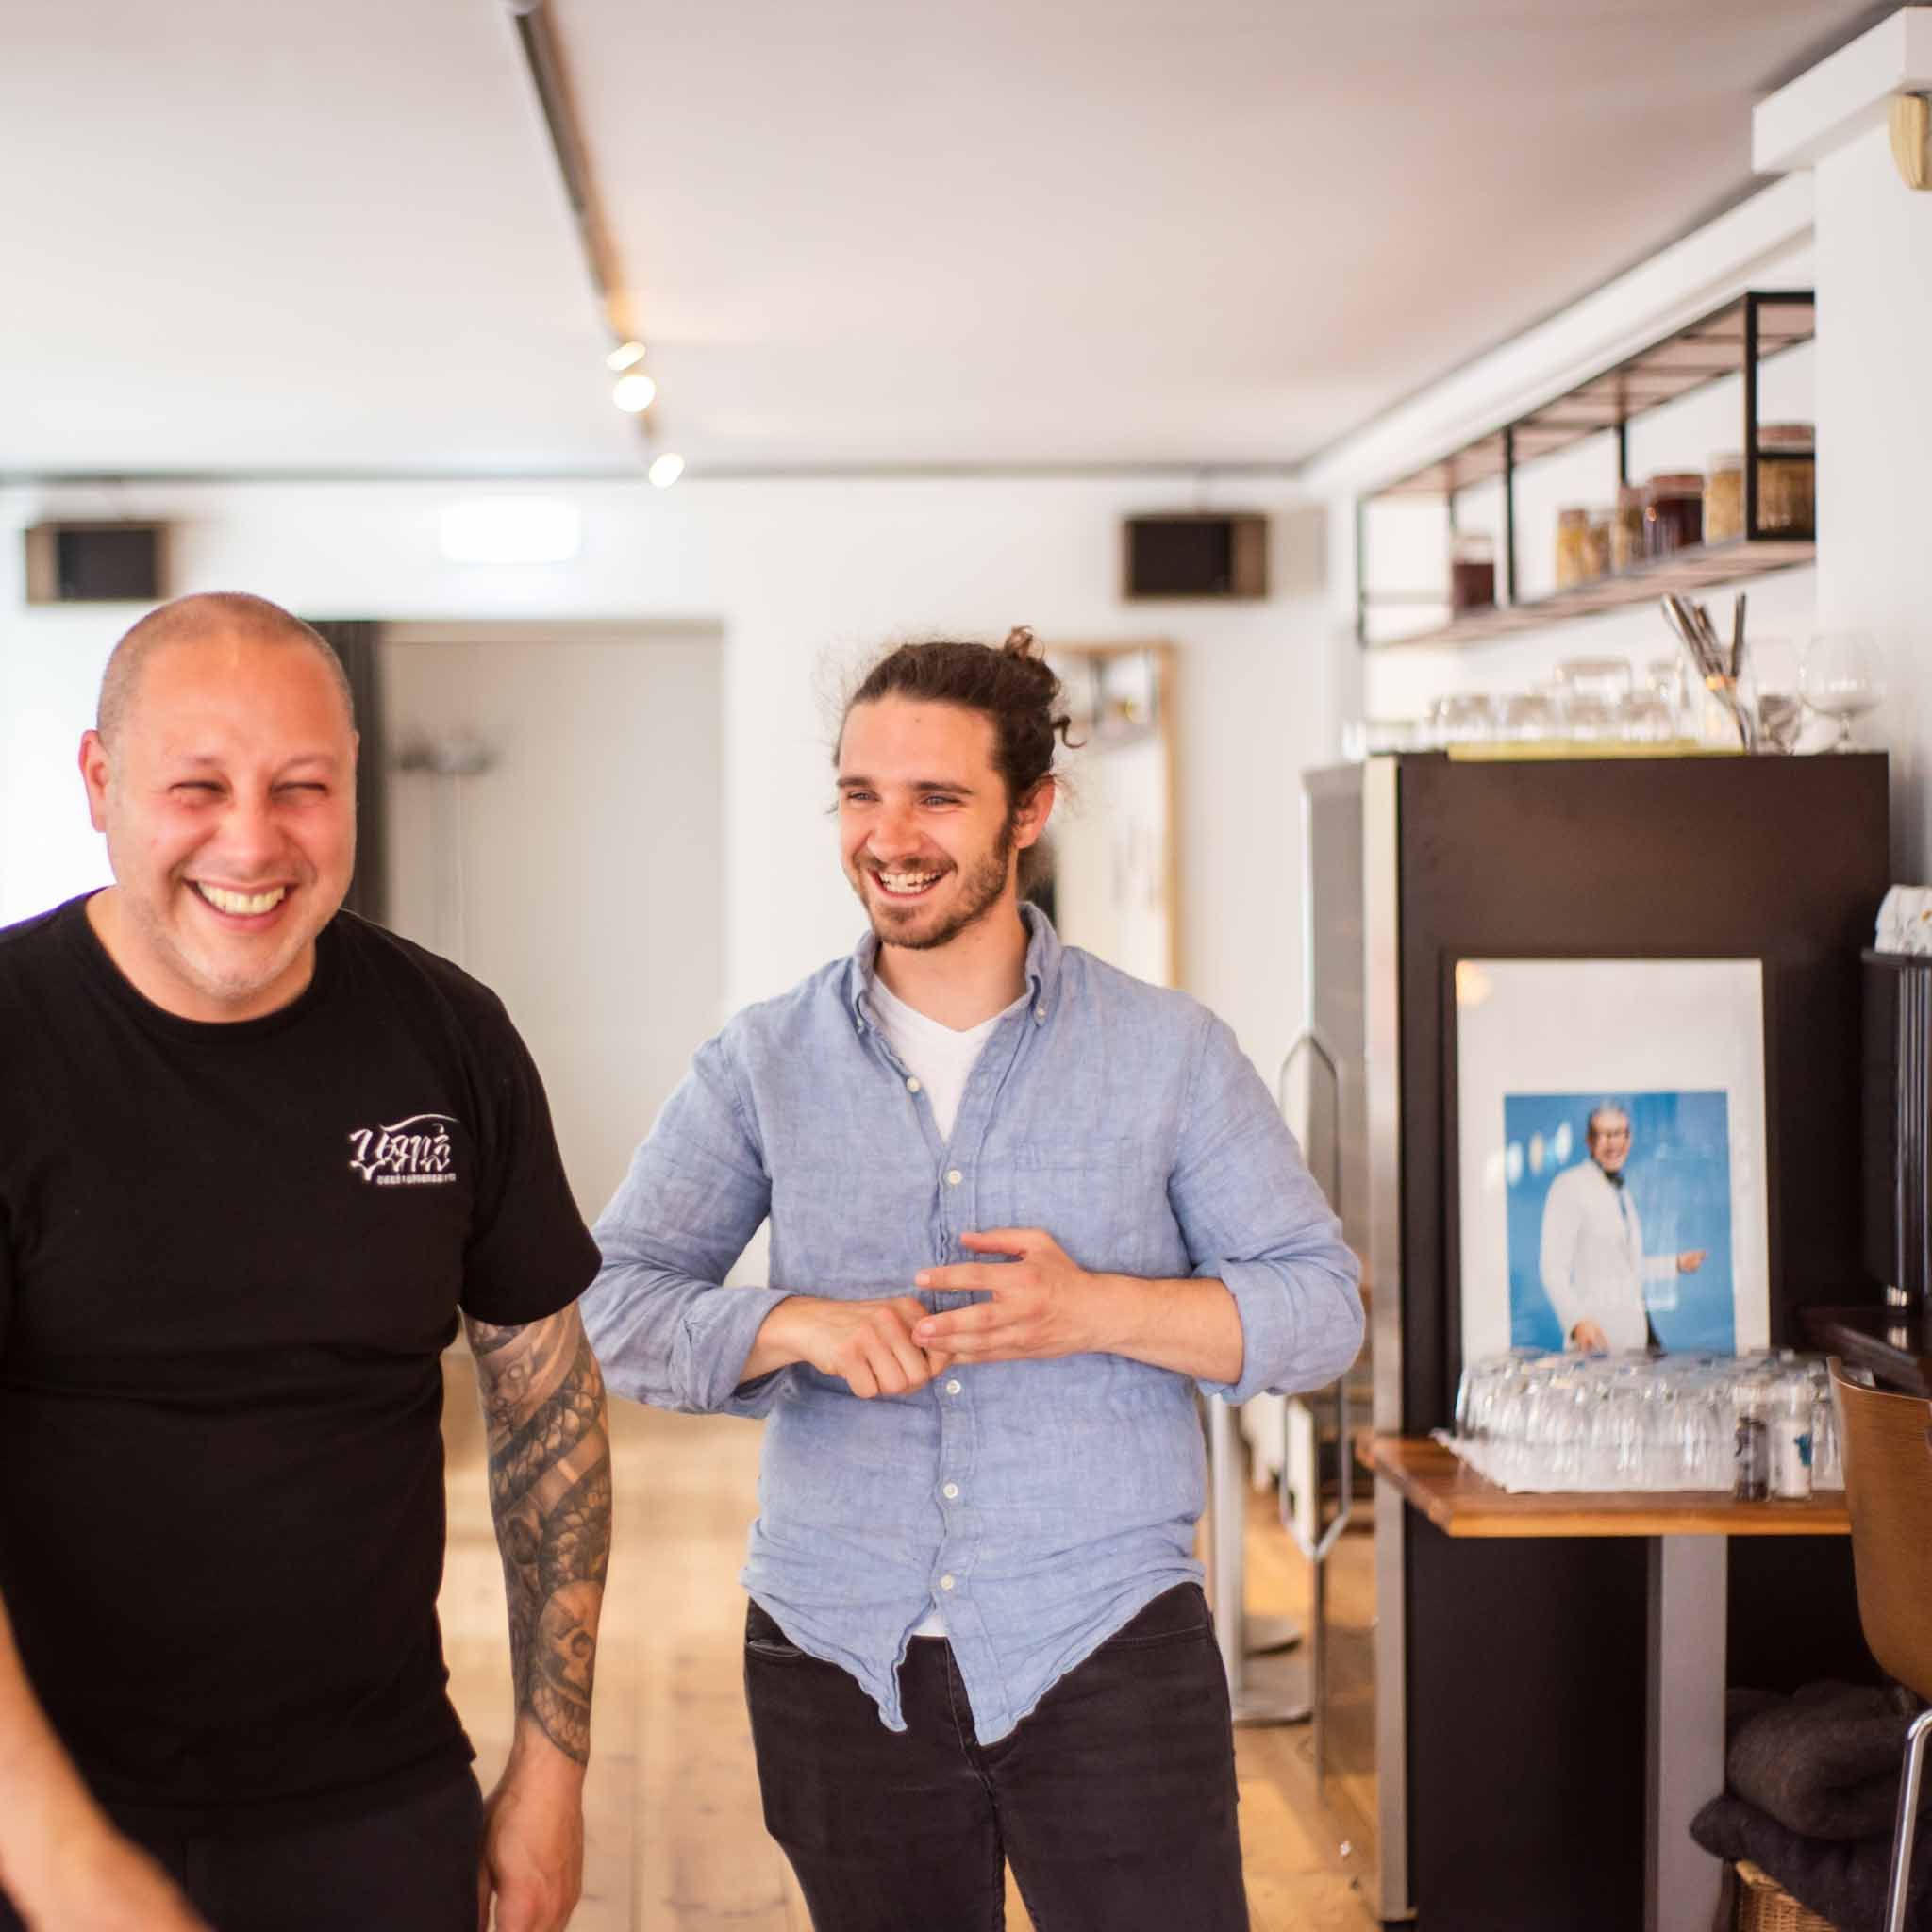 Portrait of cafe owners laughing